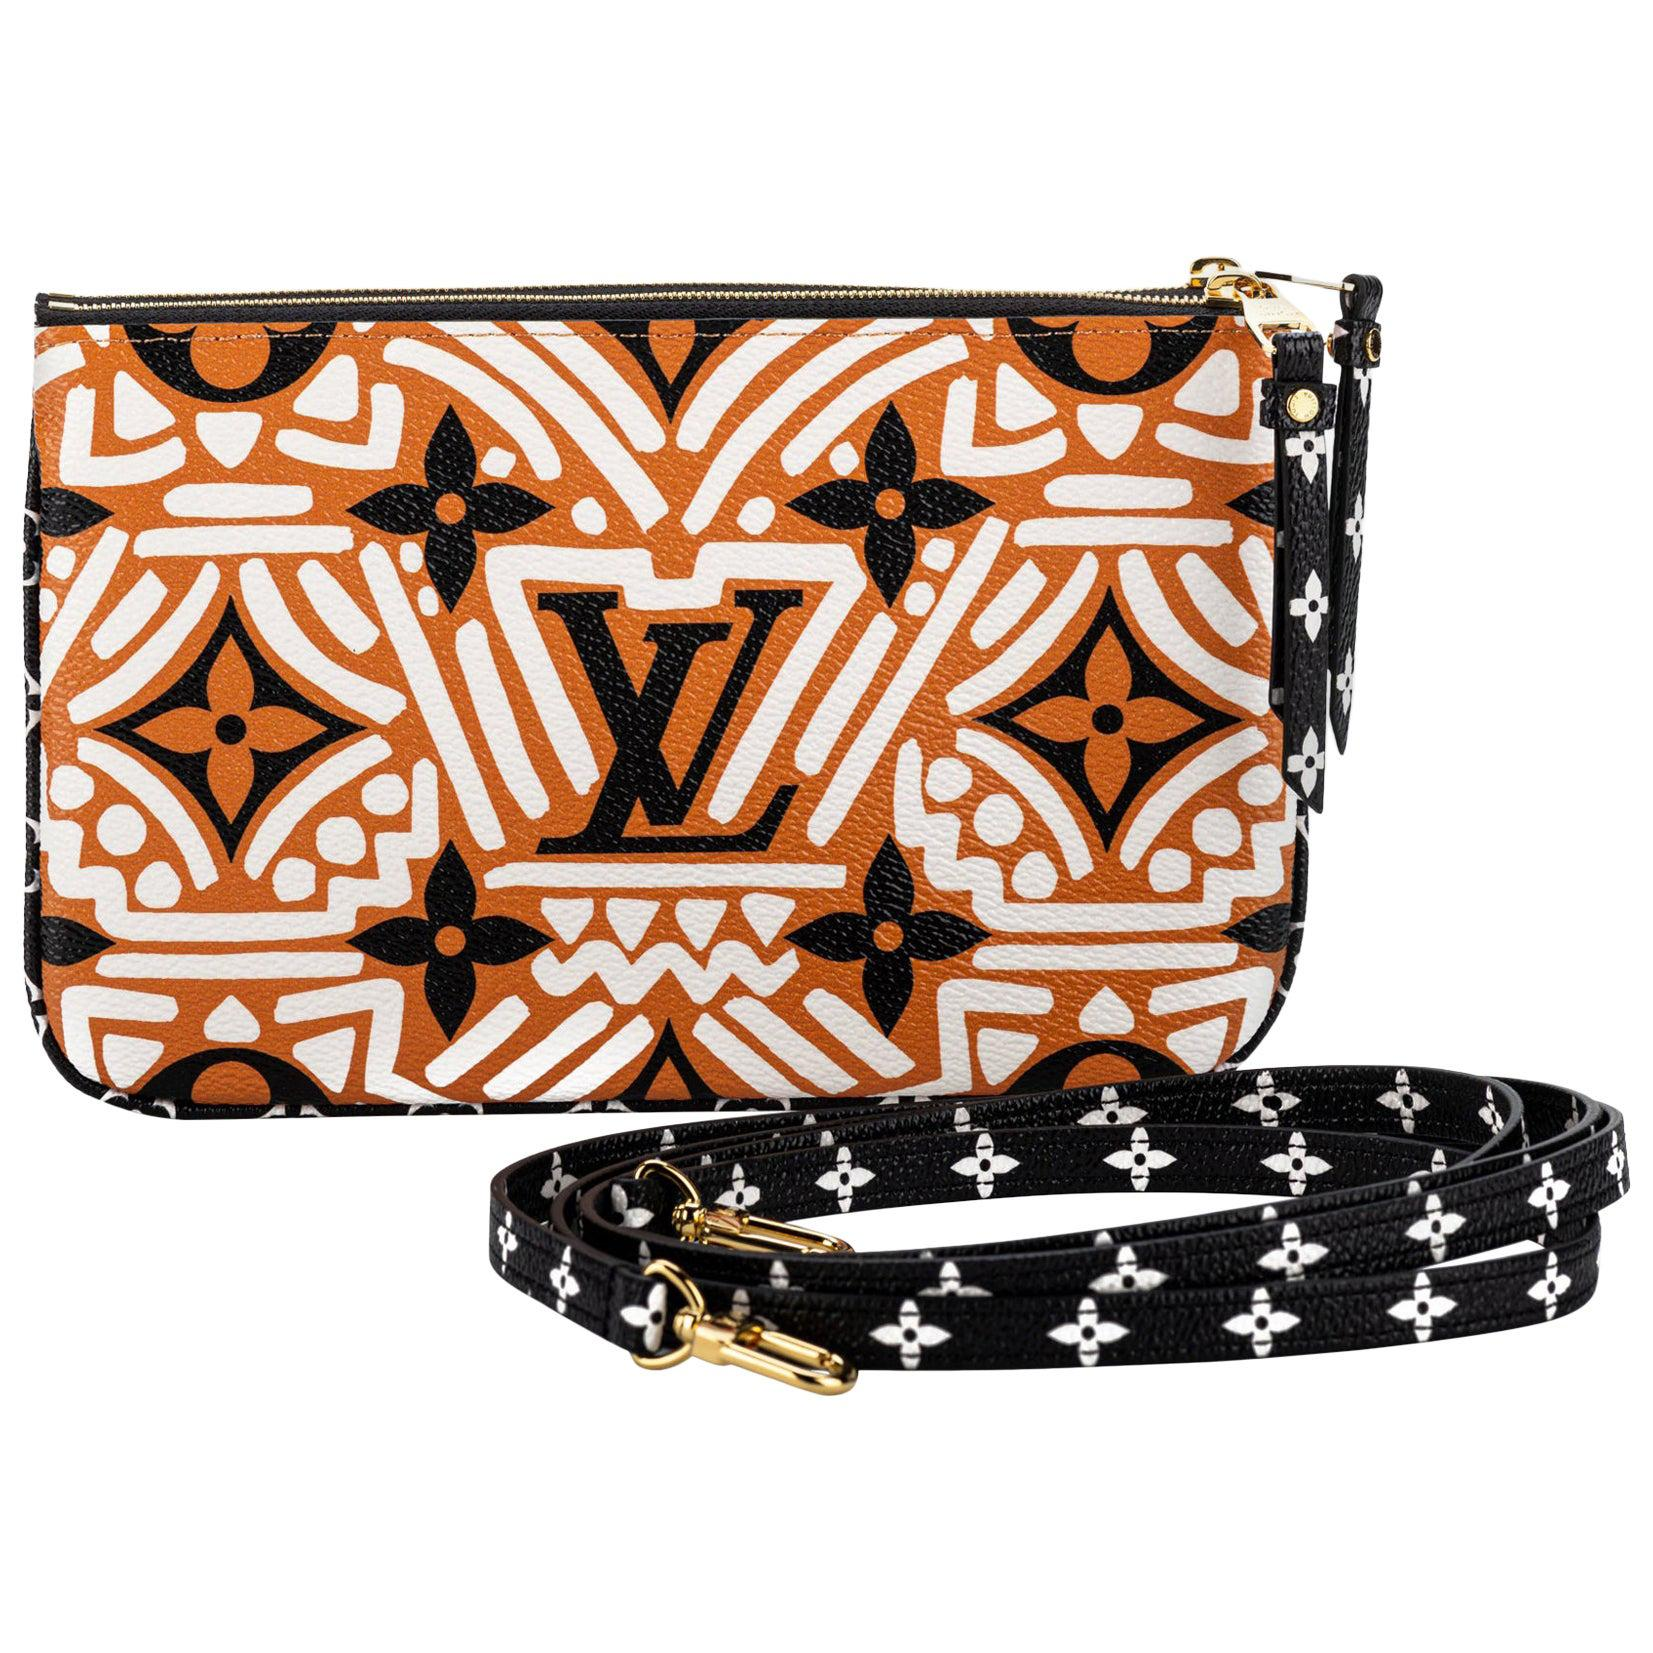 New Louis Vuitton Limited Edition Tribal Double Pochette Bag